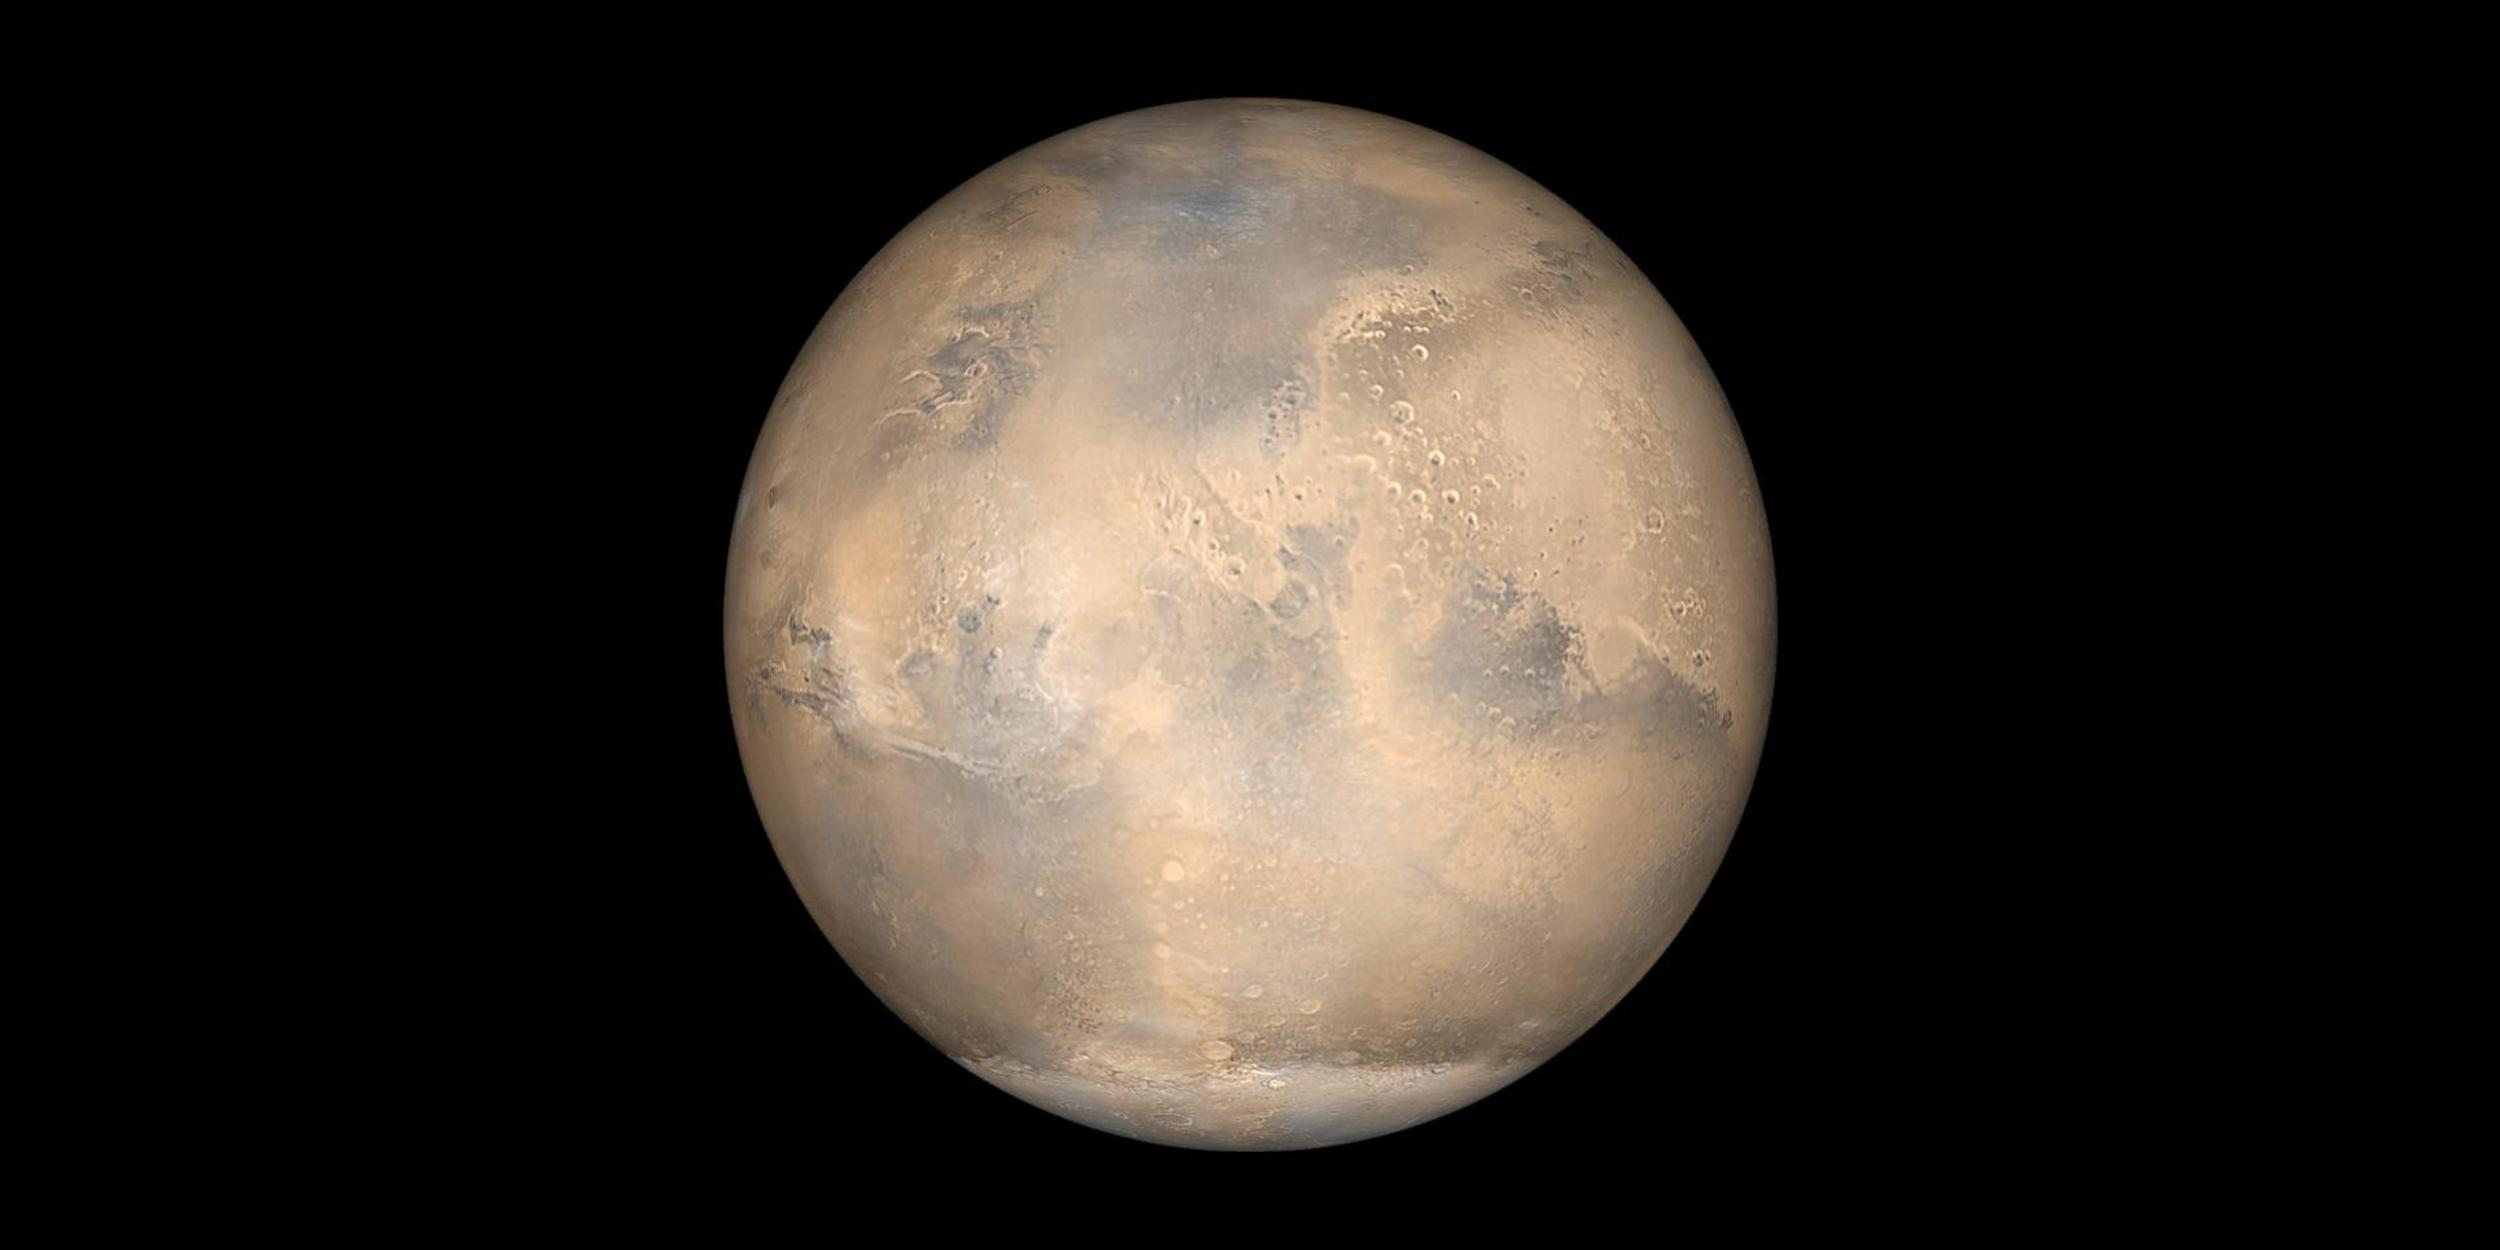 Mars is shining extra bright. Here's why and how to see it.